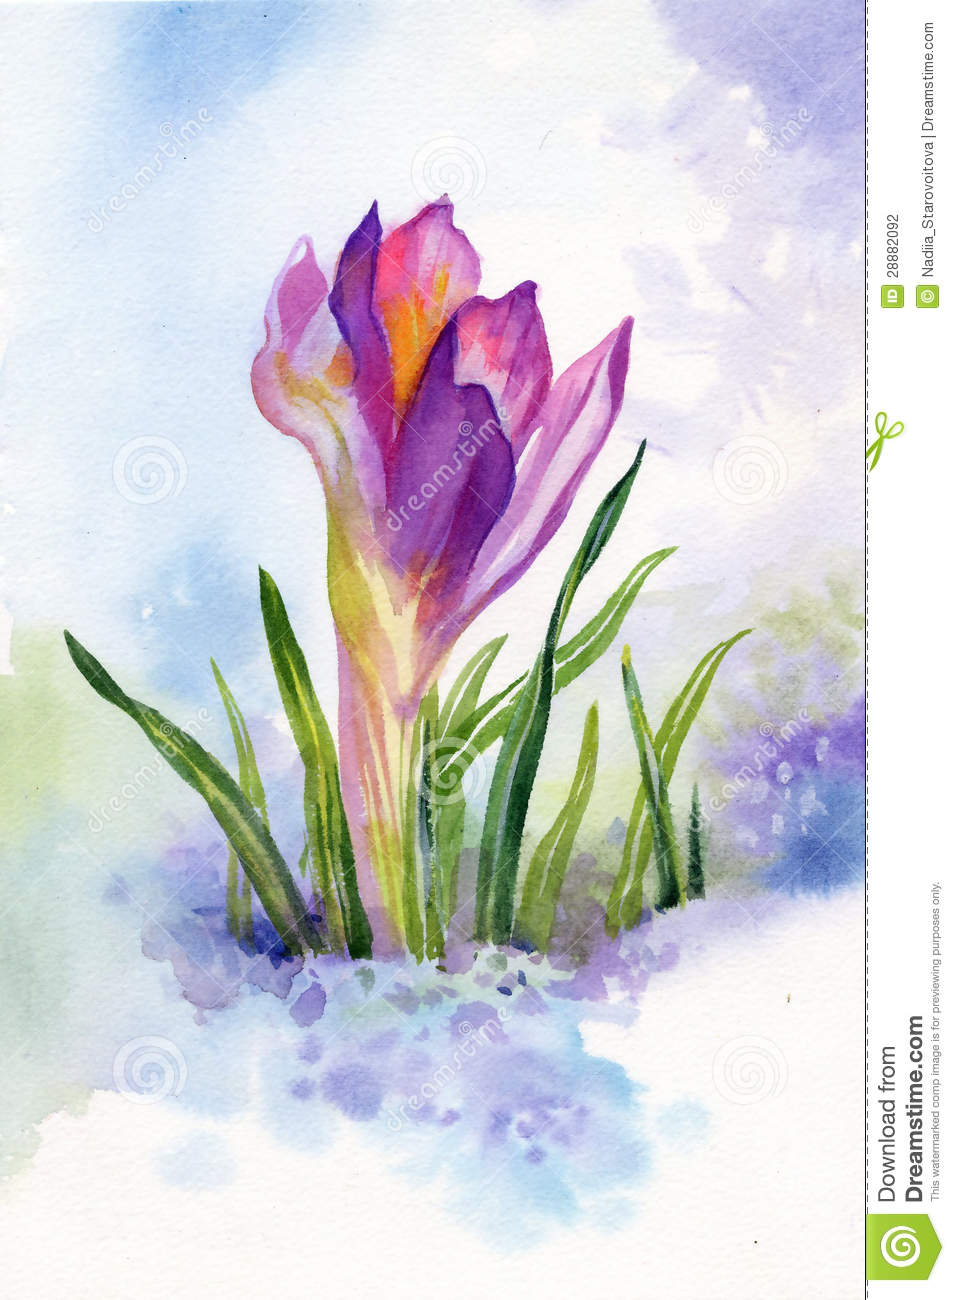 Spring Crocus Flowers In Snow Stock Illustration Illustration Of